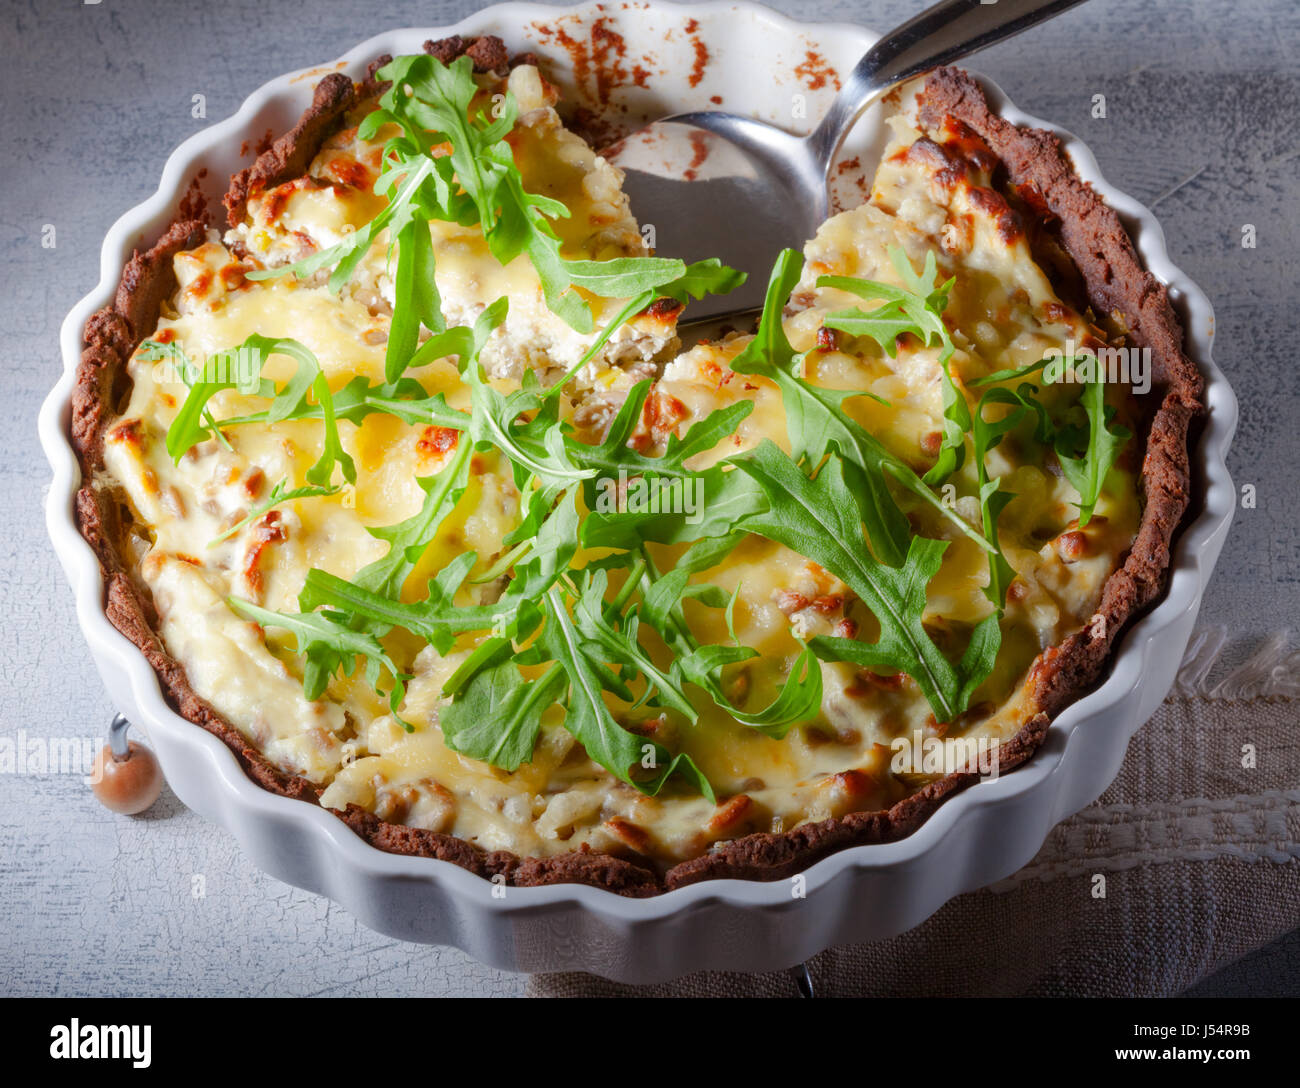 Cheese and vegetable quiche - Stock Image